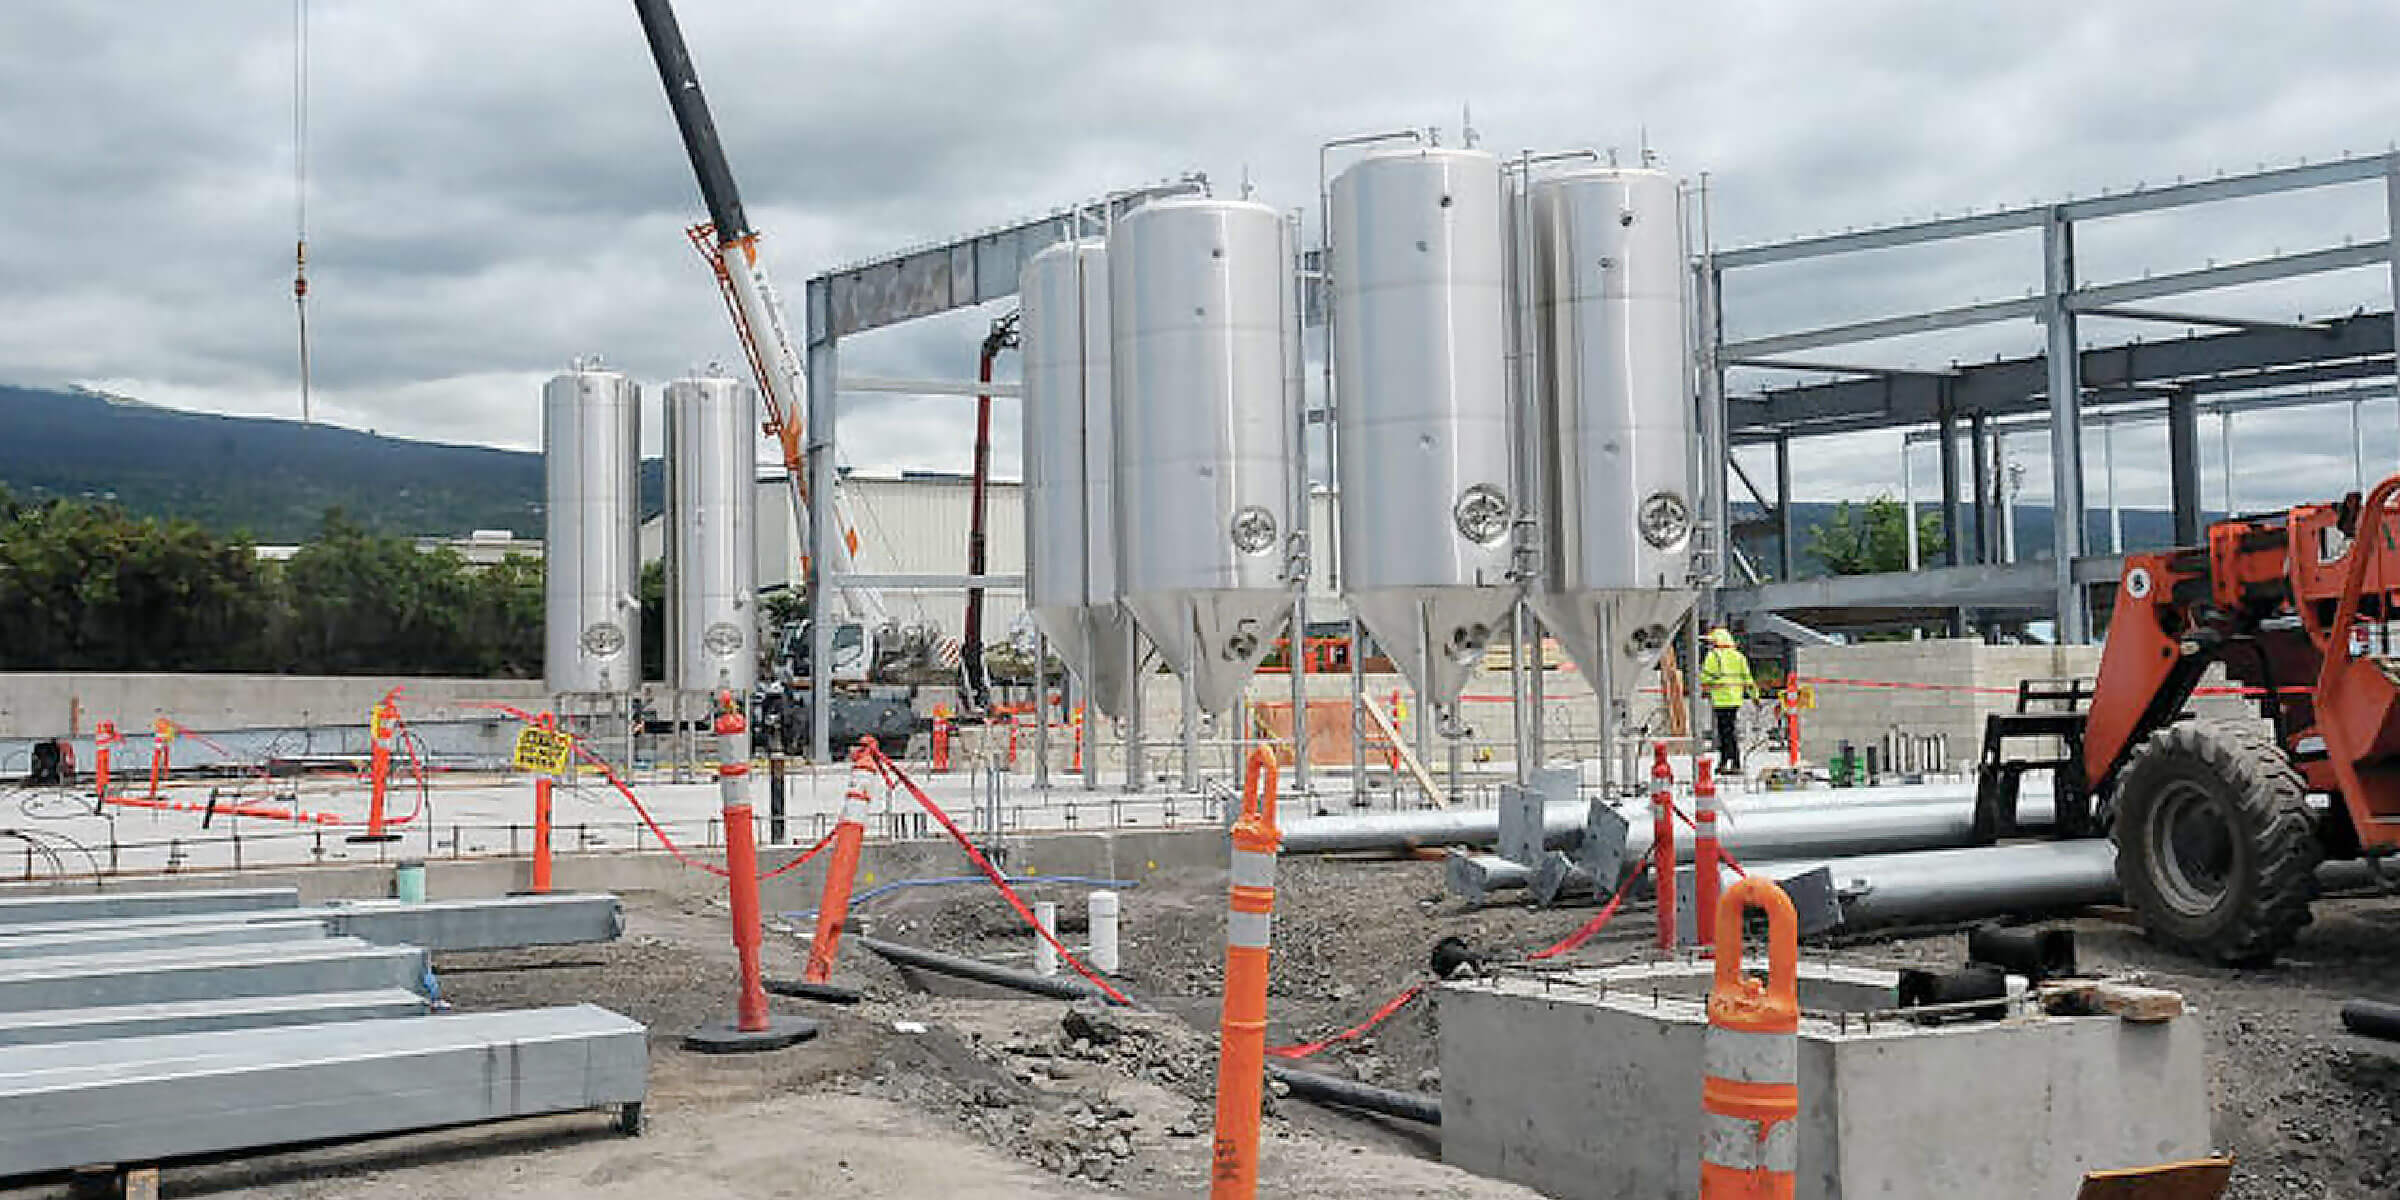 The sale of Kona Brewing Co. in Hawaii includes the new $30 million brewery and canning operation currently under construction.